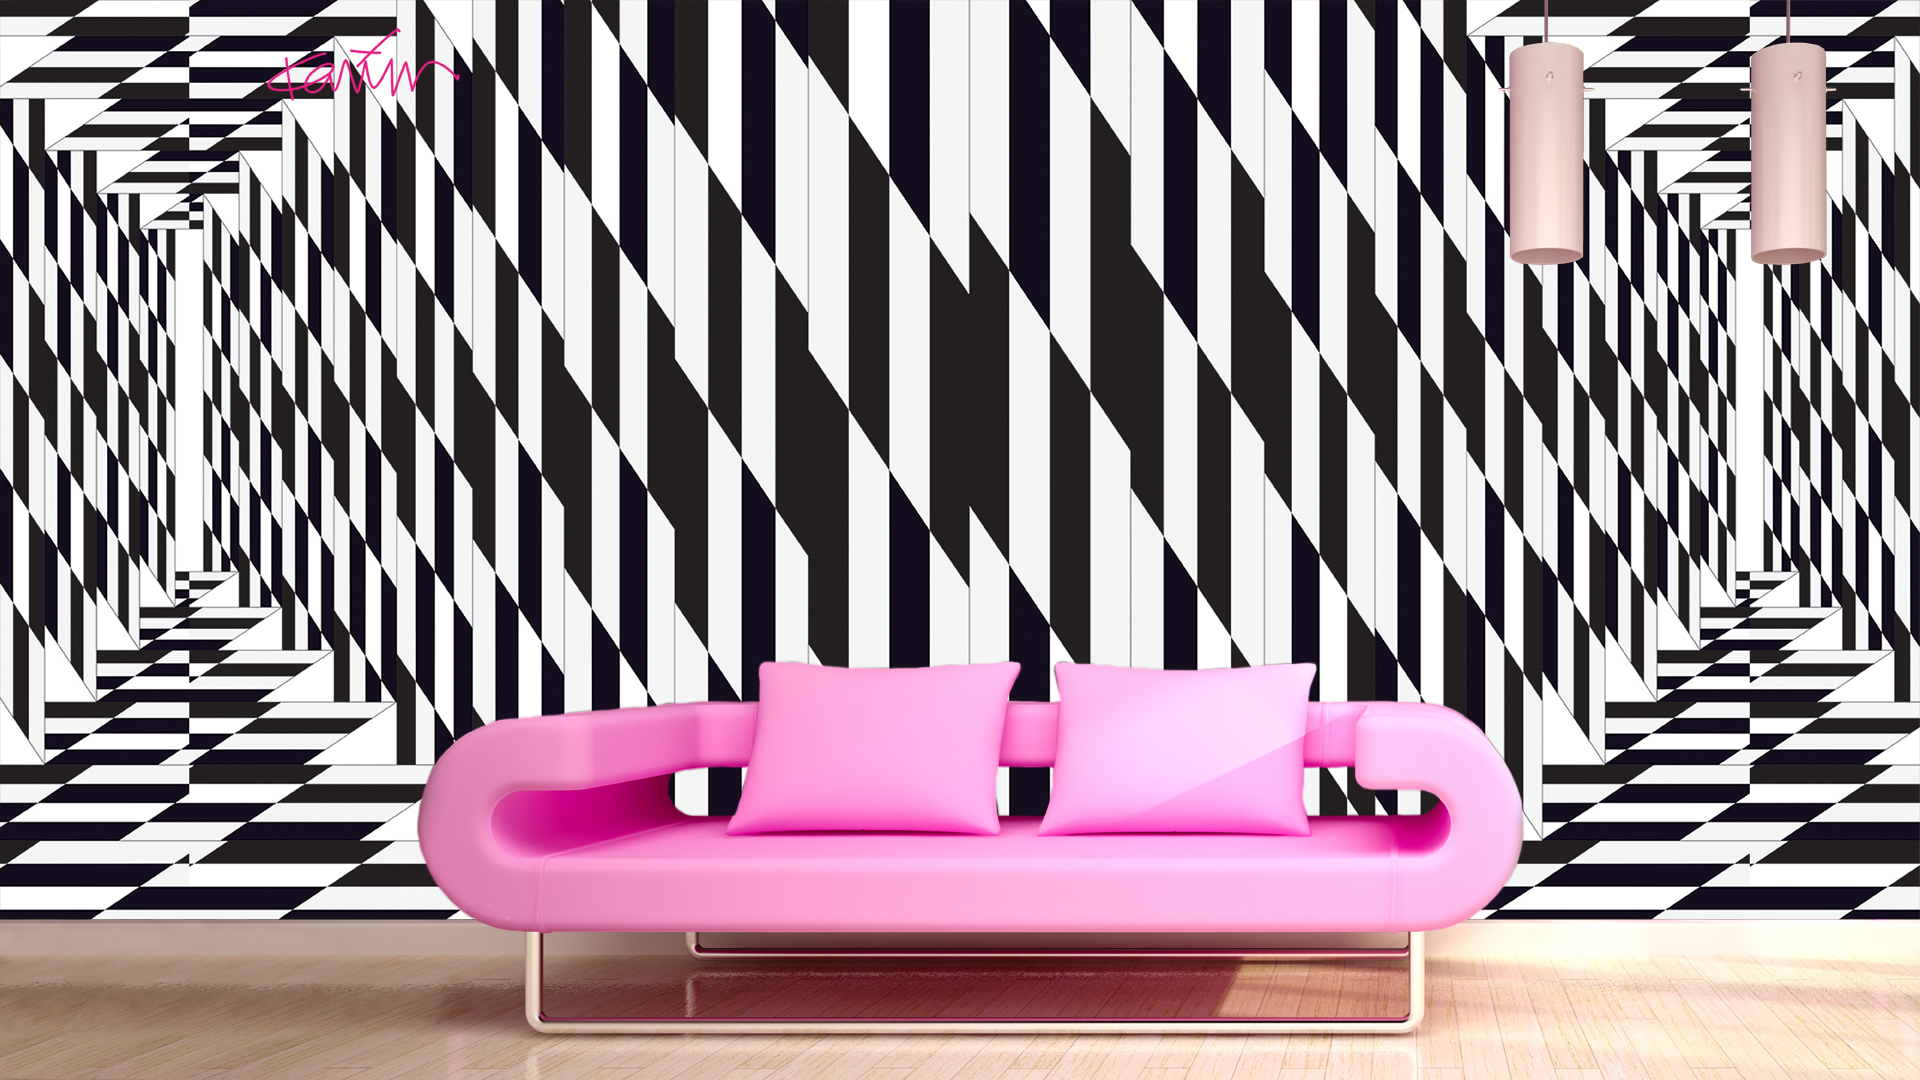 Multiverse By Karim Rashid Is A Collection Of Wallpaper Designed For The Italian Brand Glamora Nine Concepts In Four Color Variants Compose